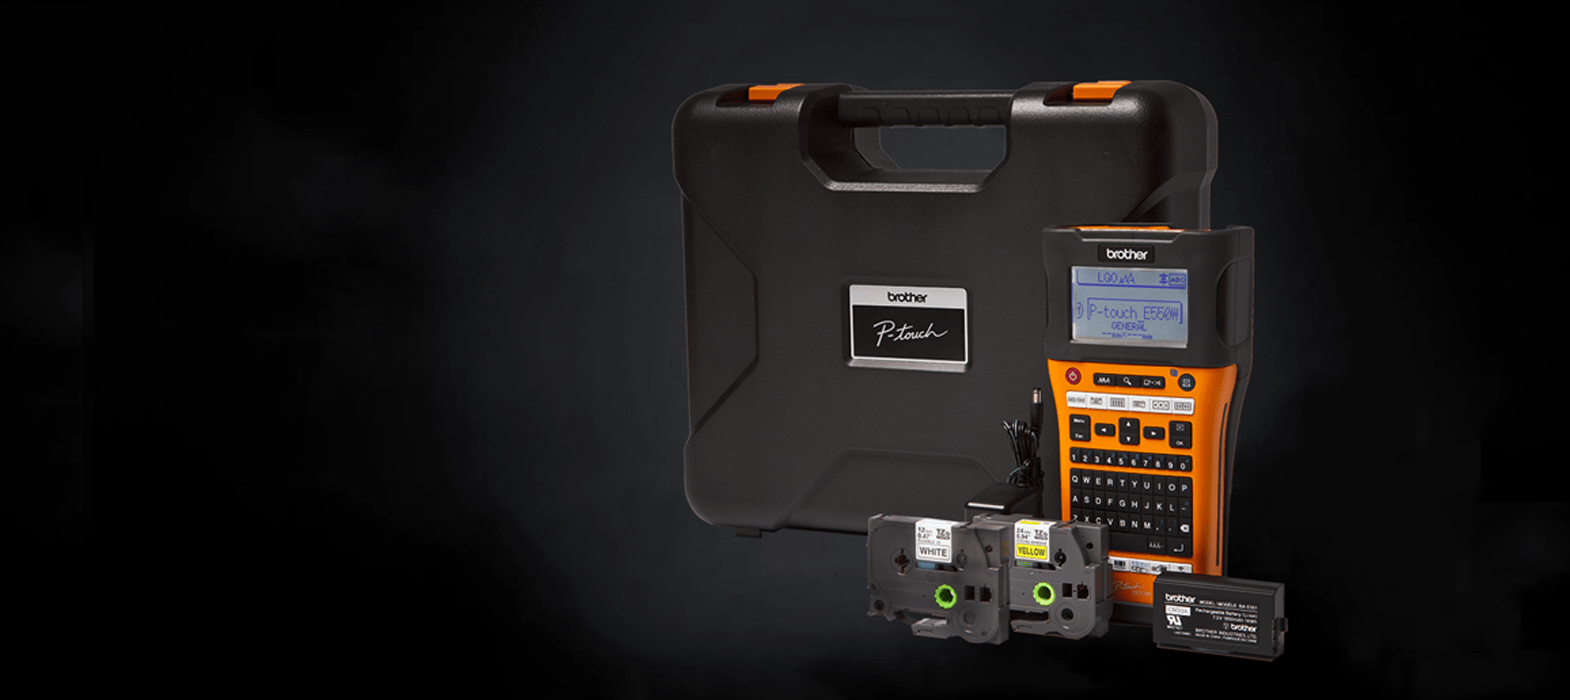 Leave the mark of a smart professional with a Brother label printer